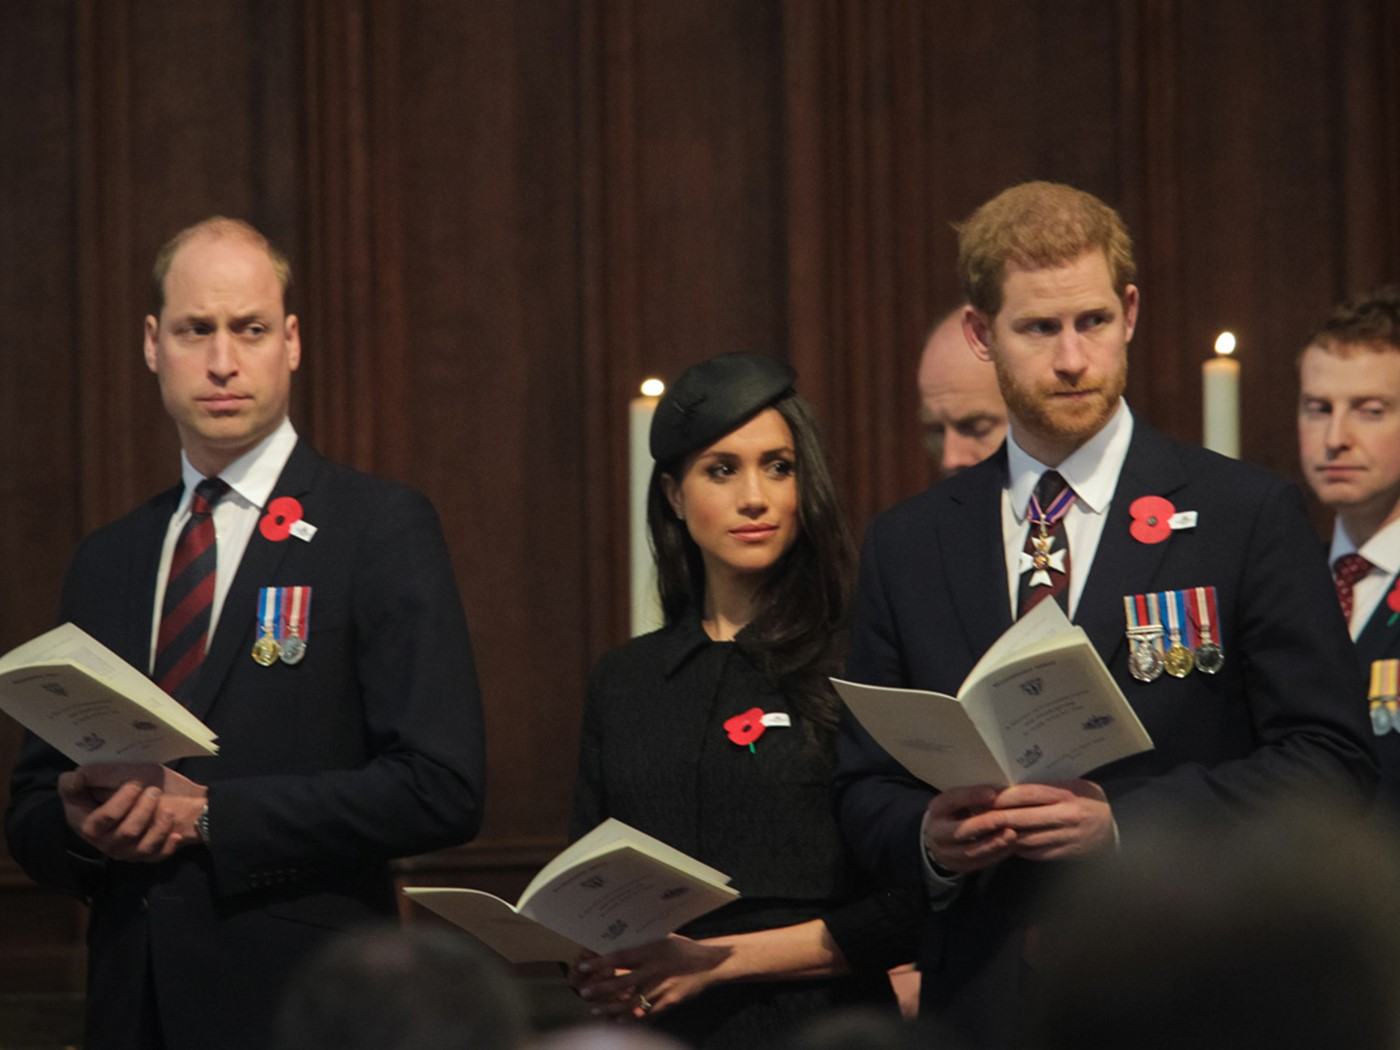 Prince William, Ms Meghan Markle and Prince Harry during the service